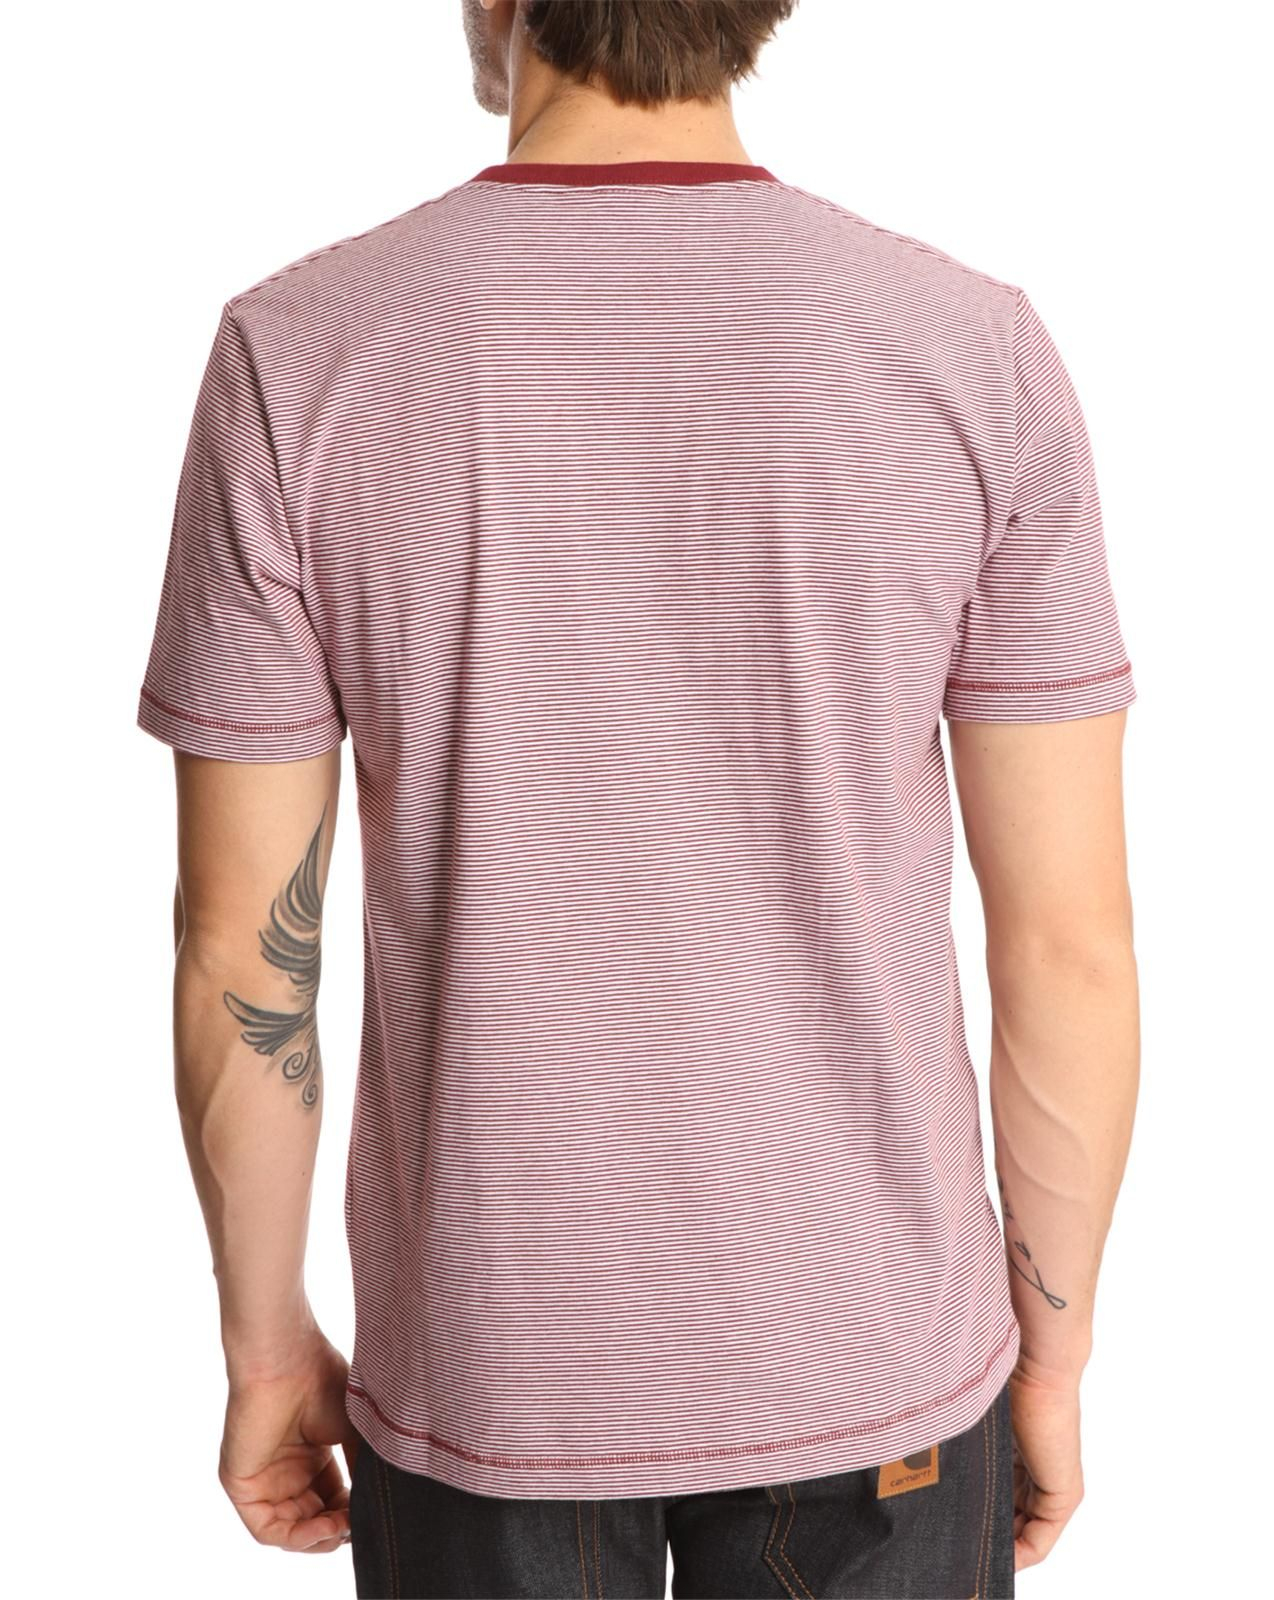 Carhartt ss loft striped maroon tshirt with pocket in red for Carhartt burgundy t shirt